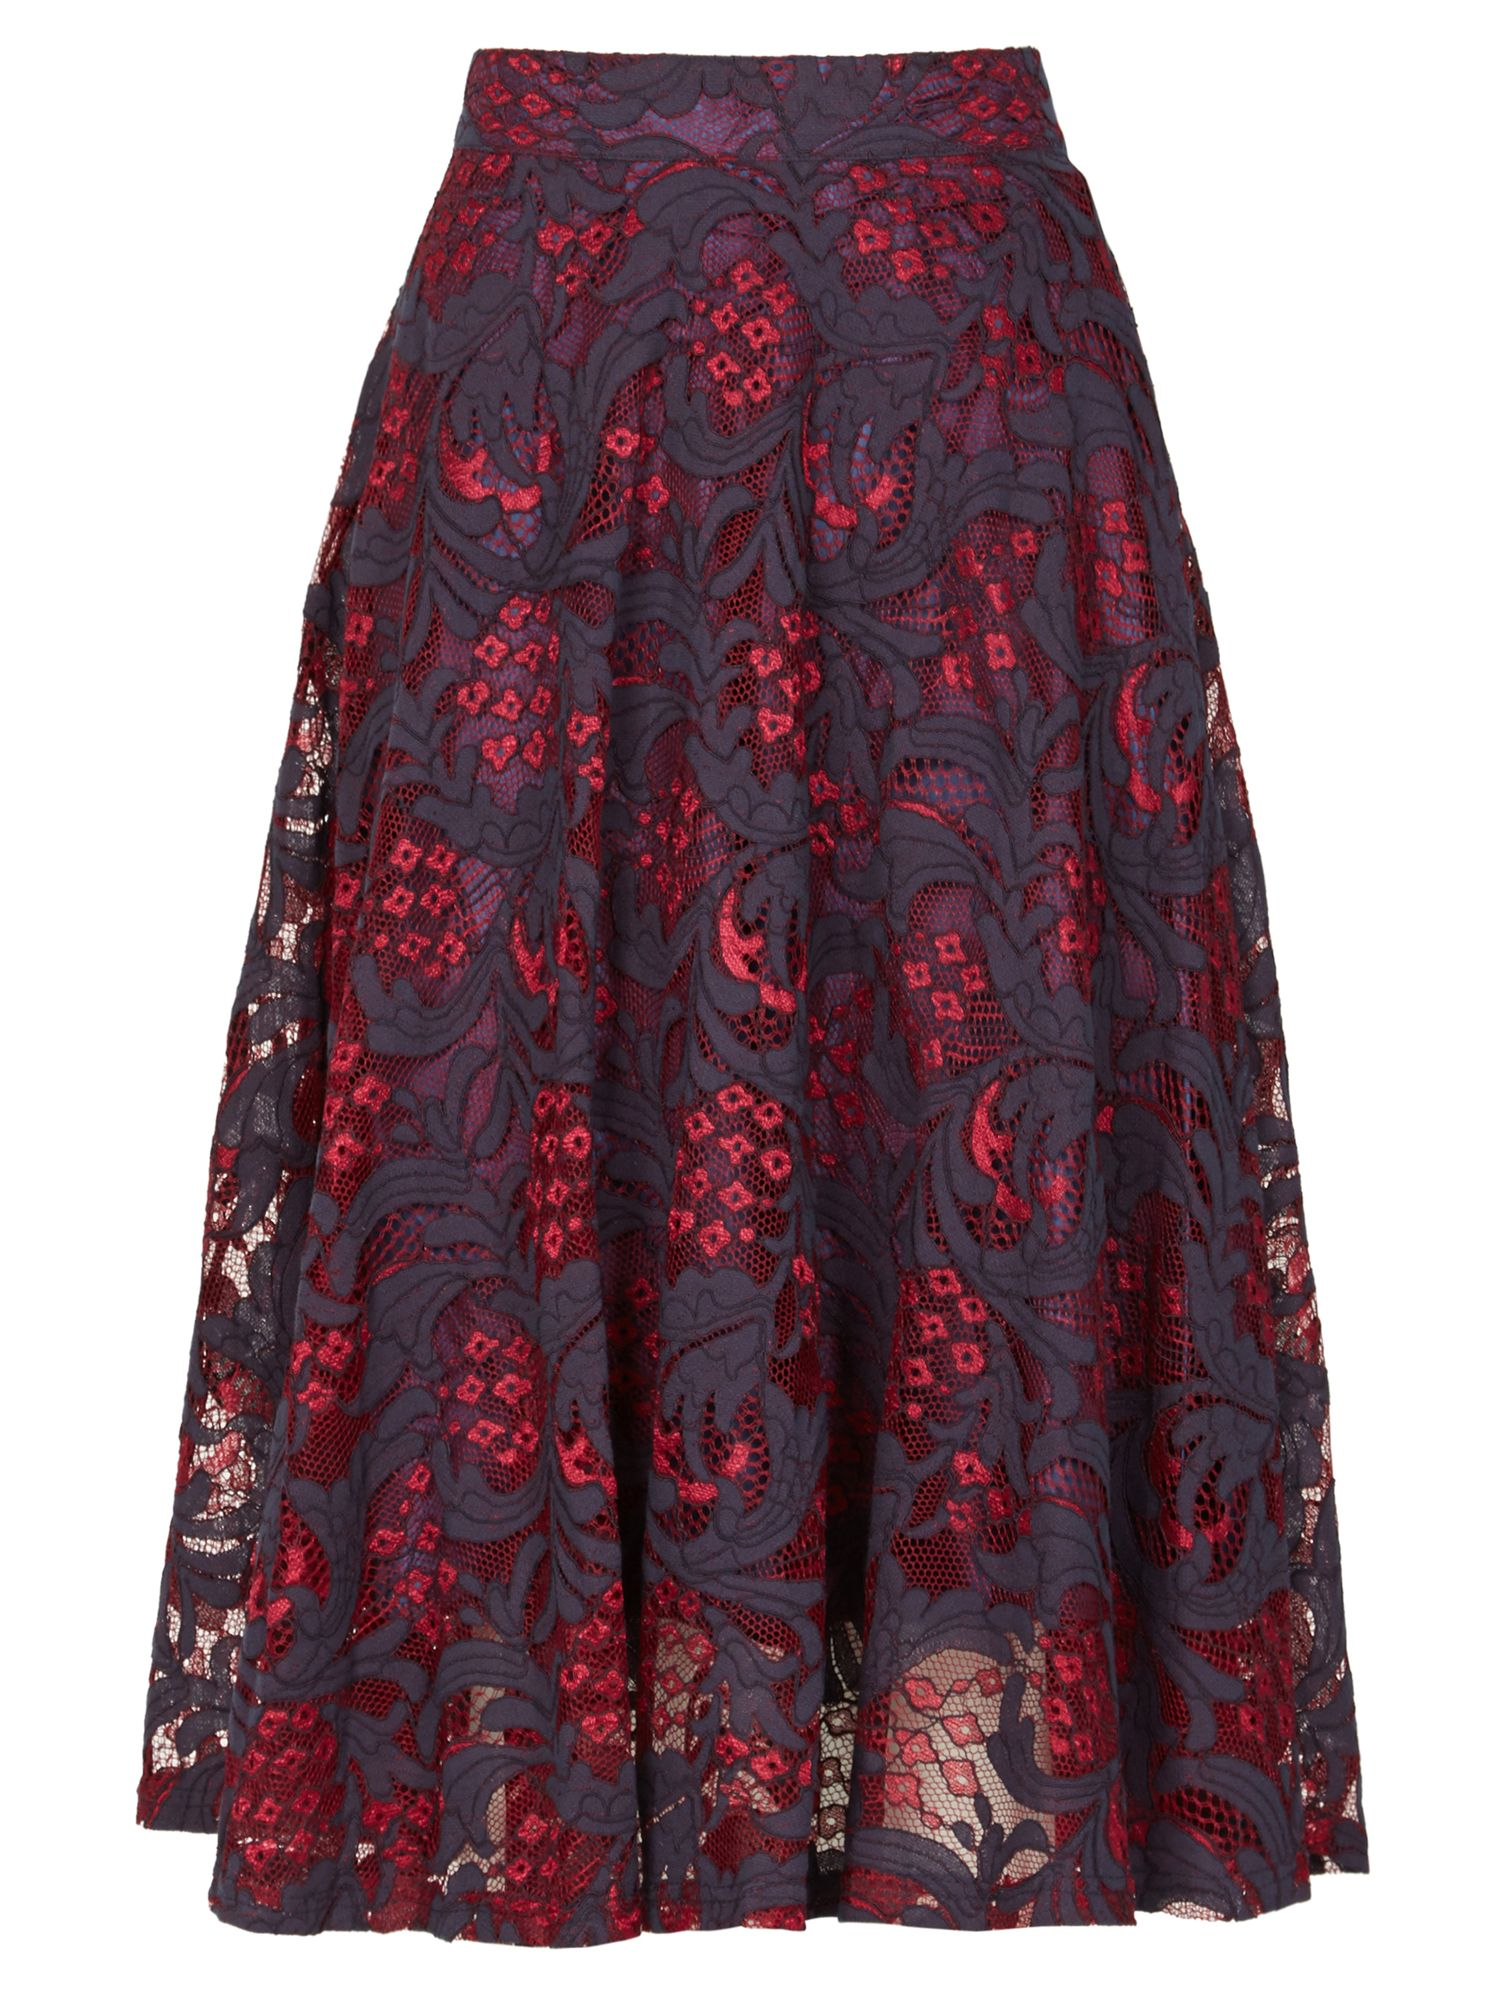 Izabel London Lace Prom Skirt, Fuchsia